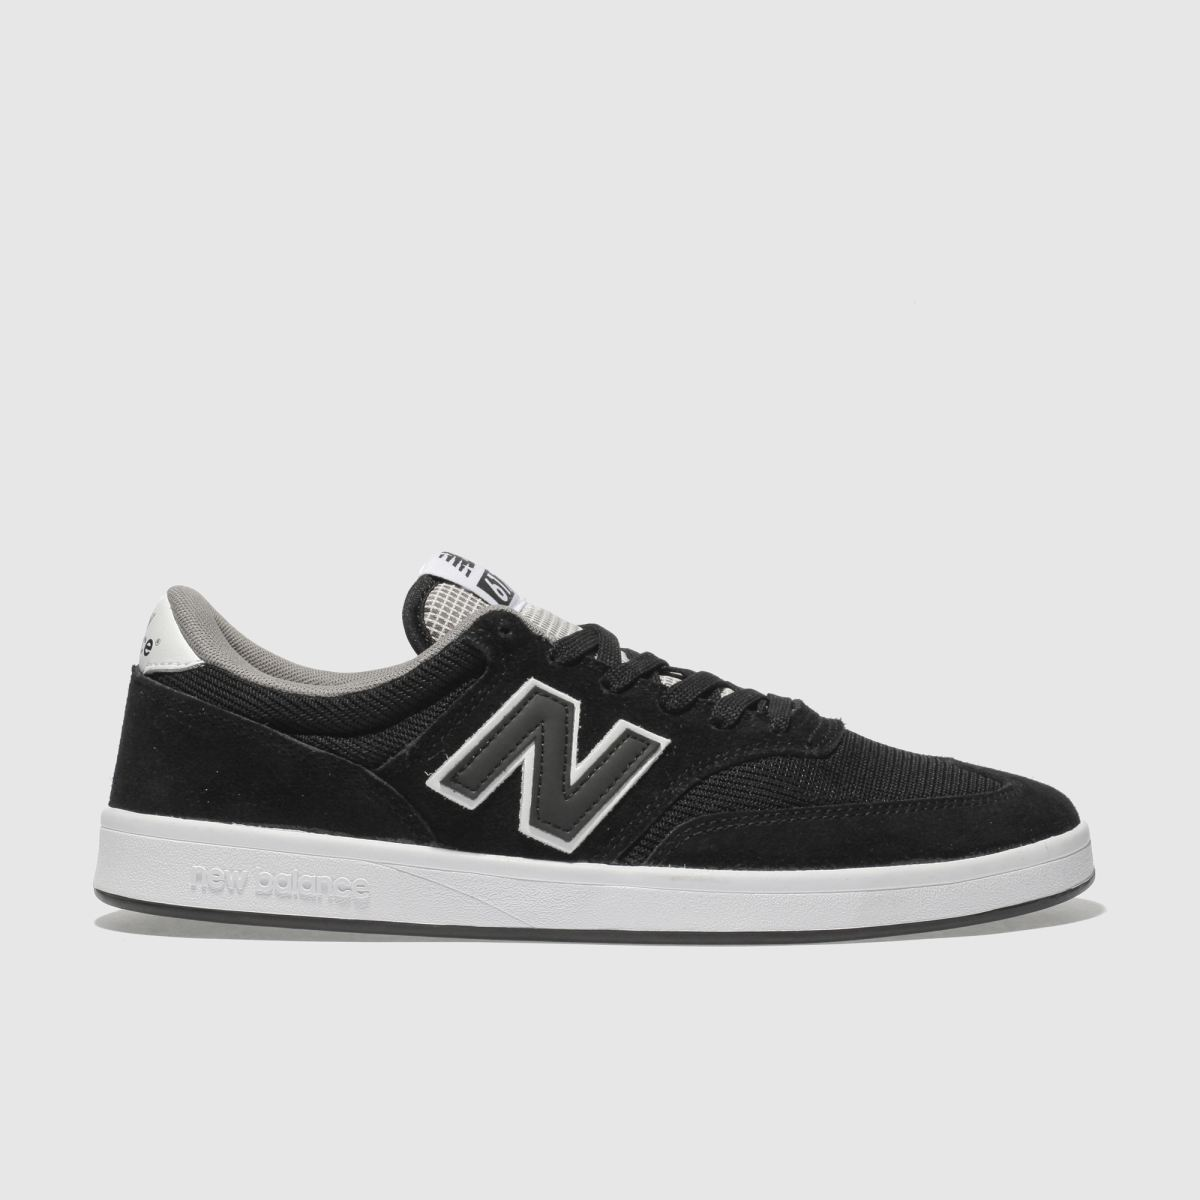 New Balance Black & Grey All Coasts 617 Trainers